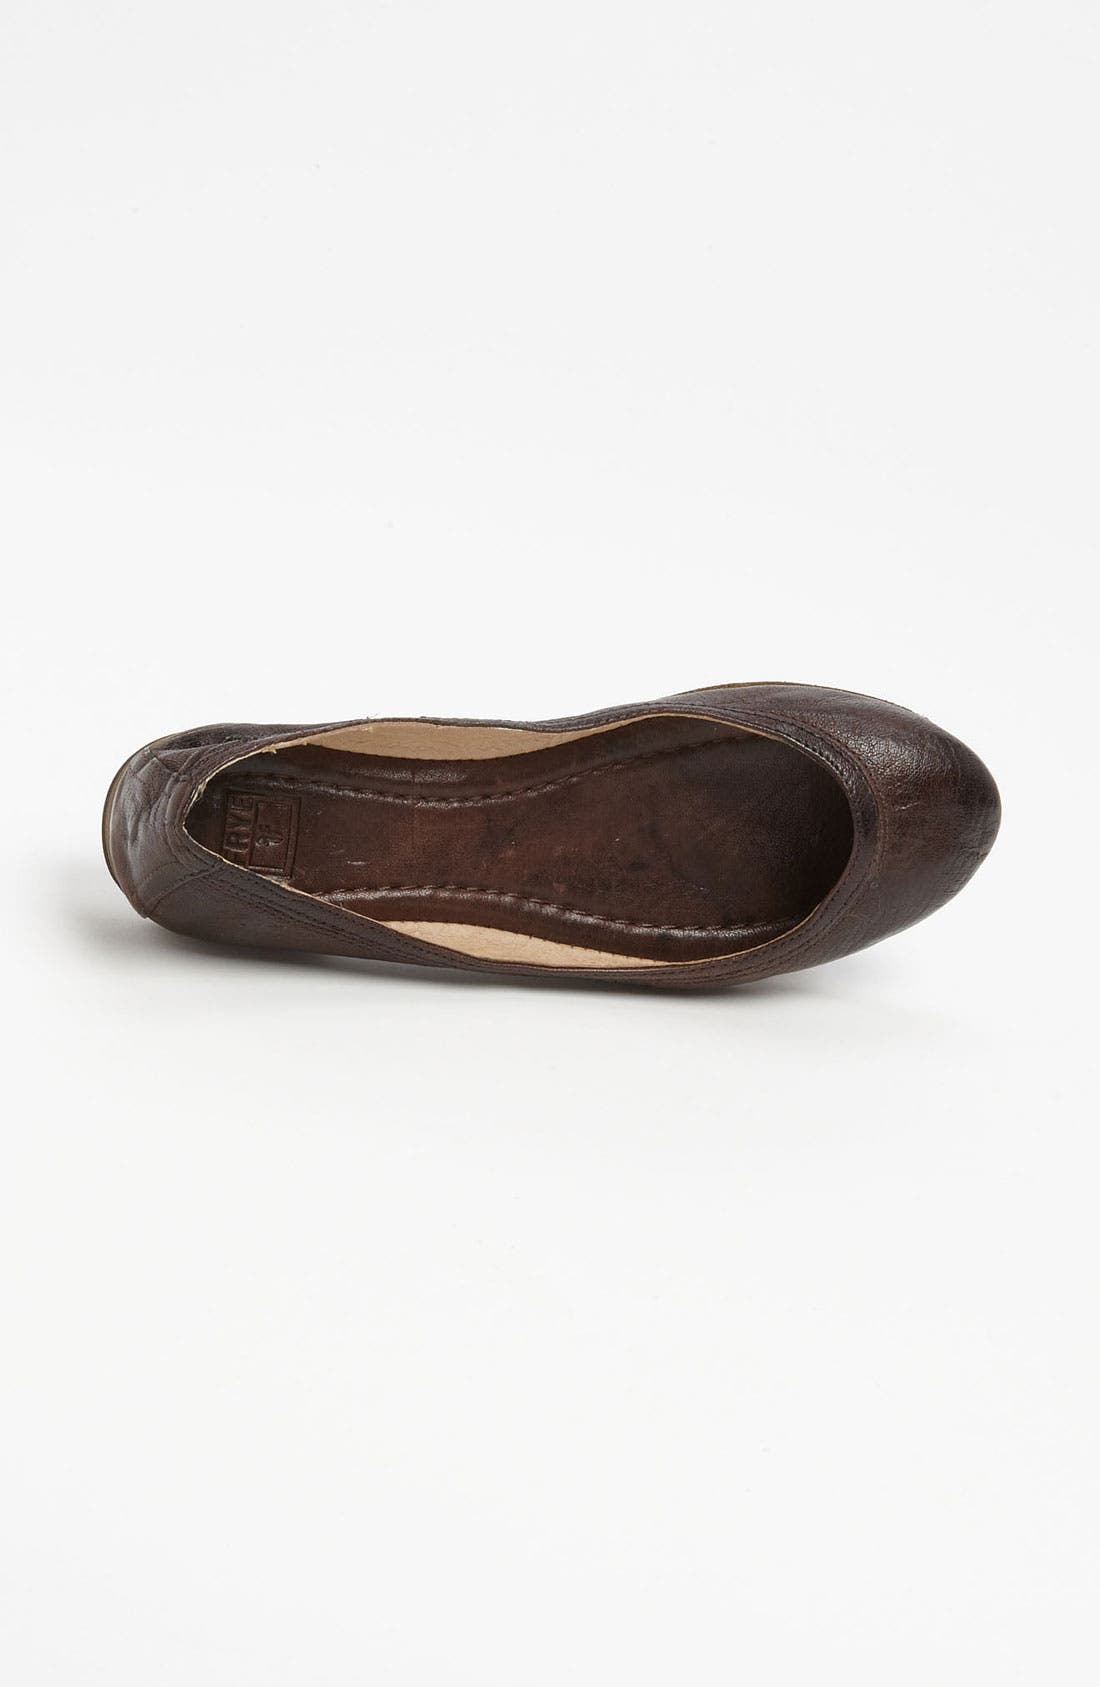 Alternate Image 3  - Frye 'Carson' Ballet Flat (Women)